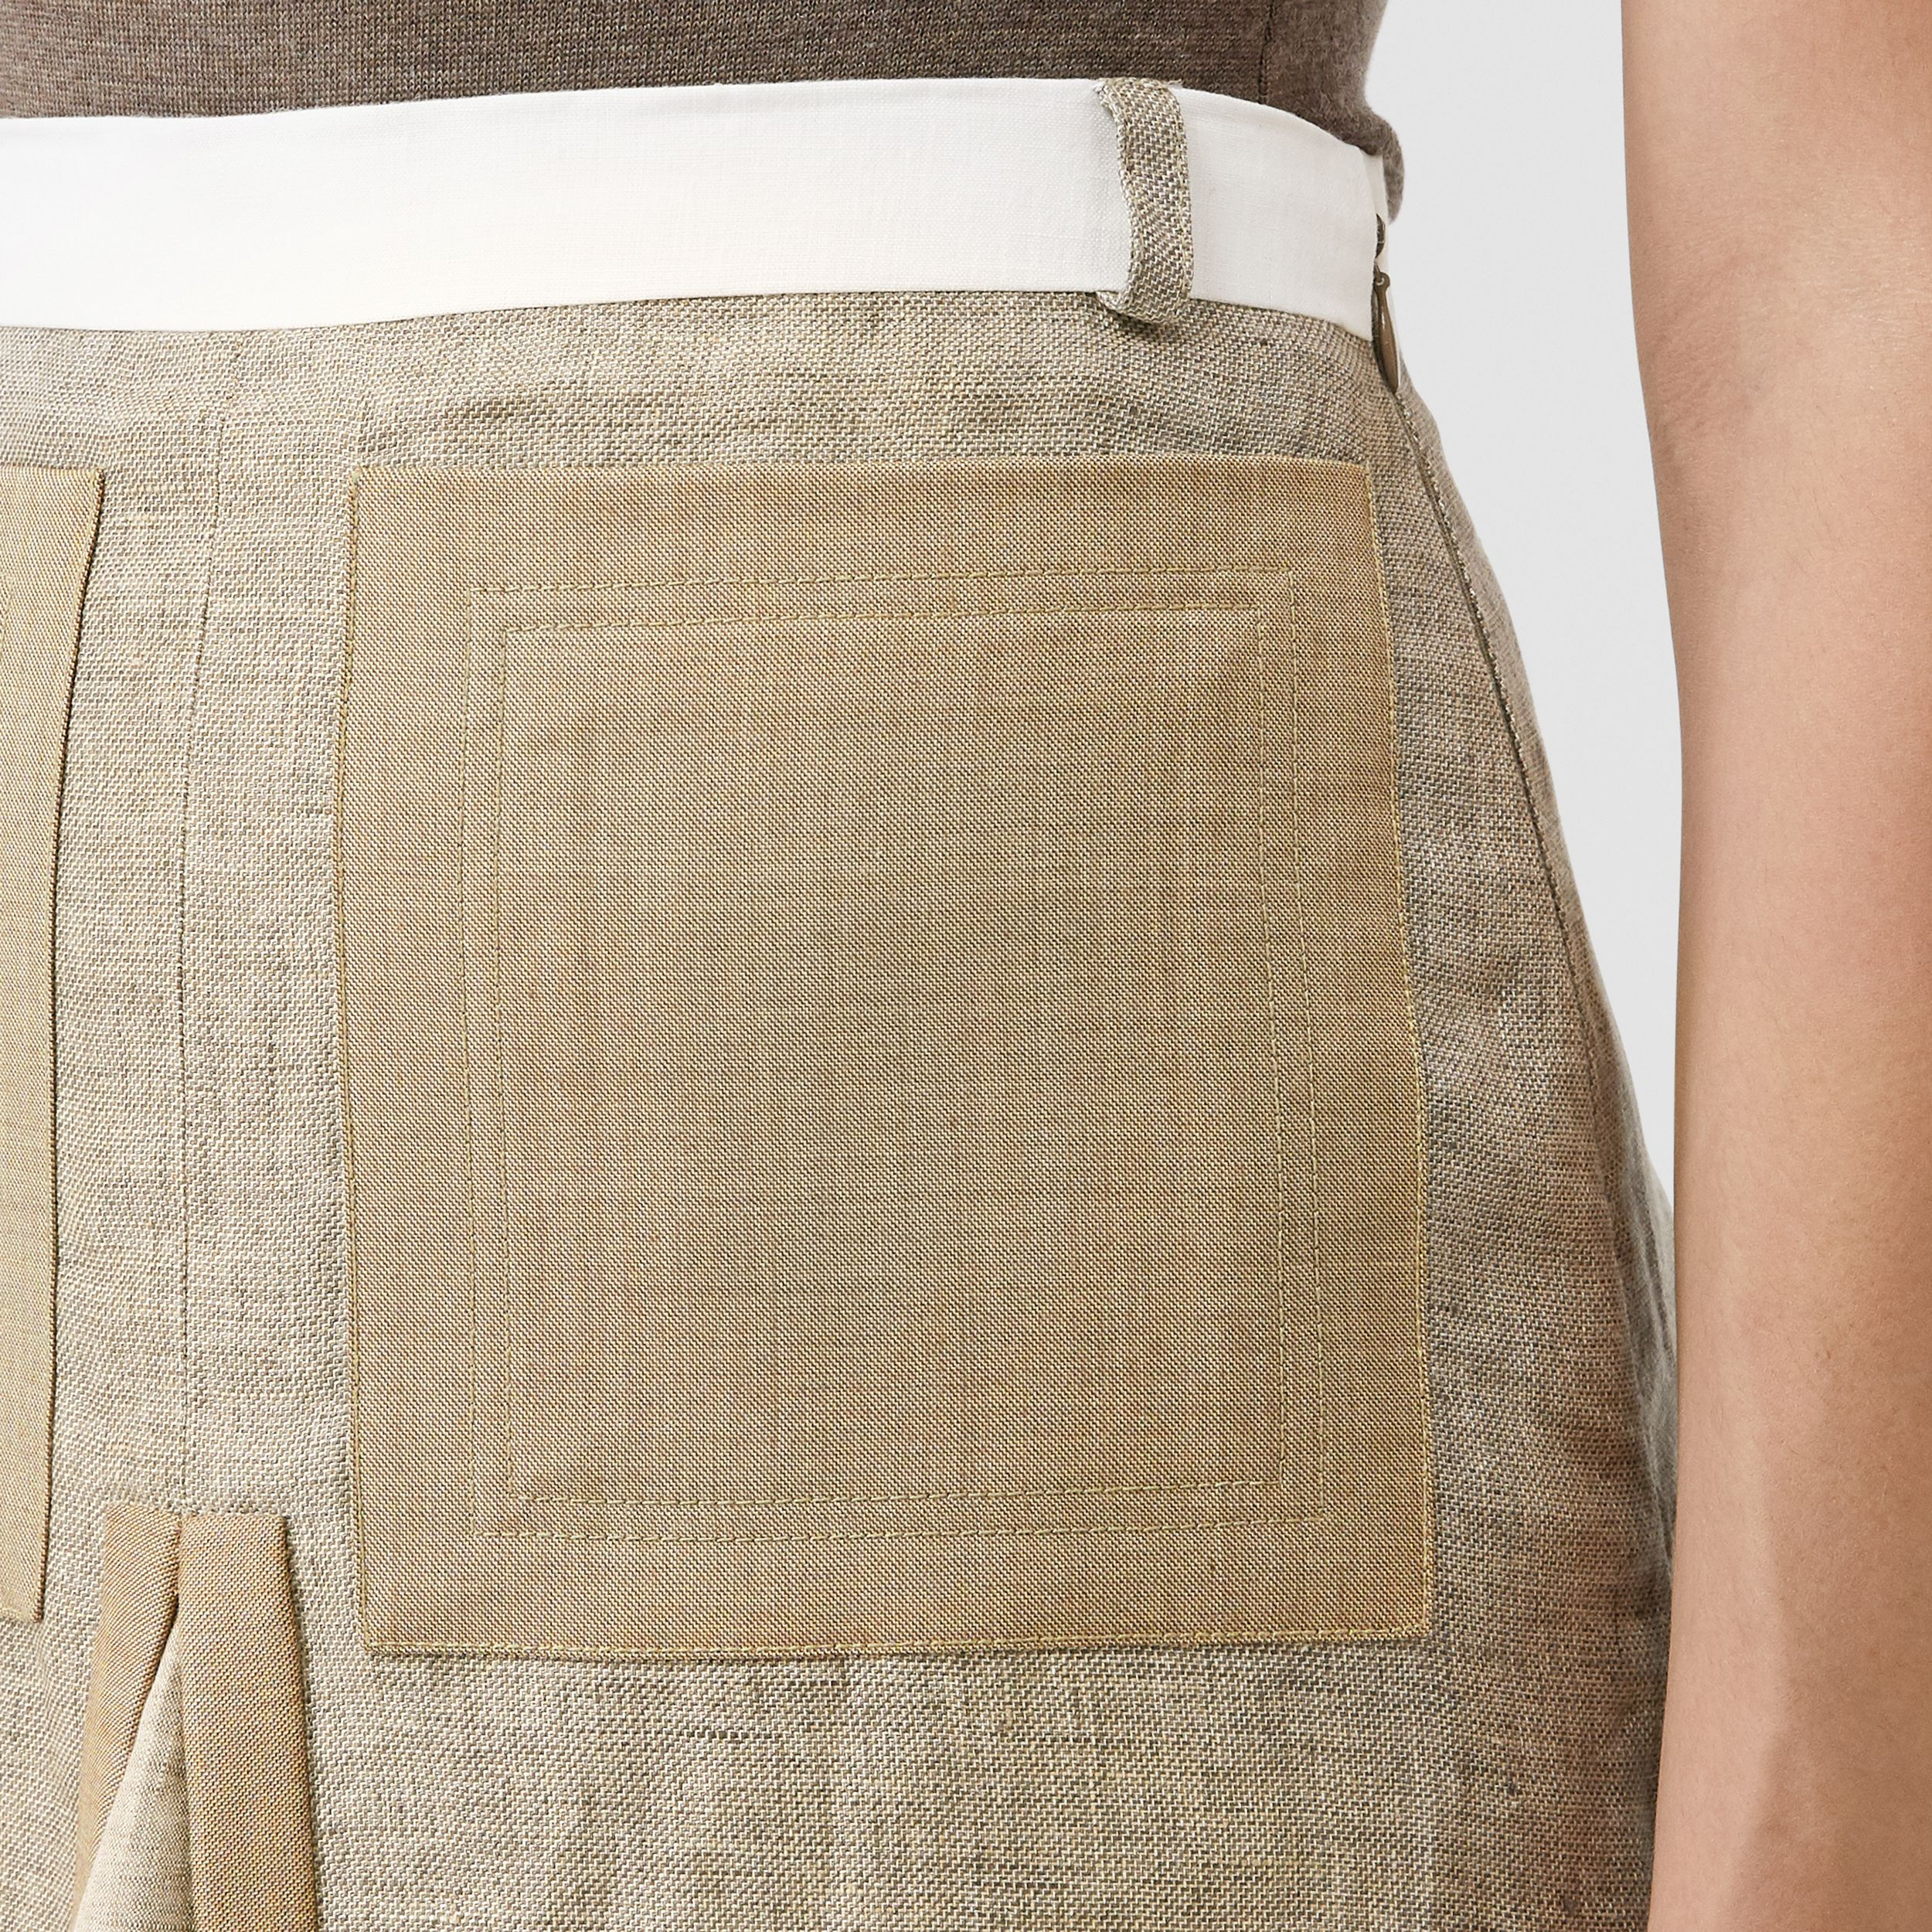 Contrast Seam and Box-pleat Detail Linen A-line Skirt in Cedar Brown Melange - Women | Burberry - 2